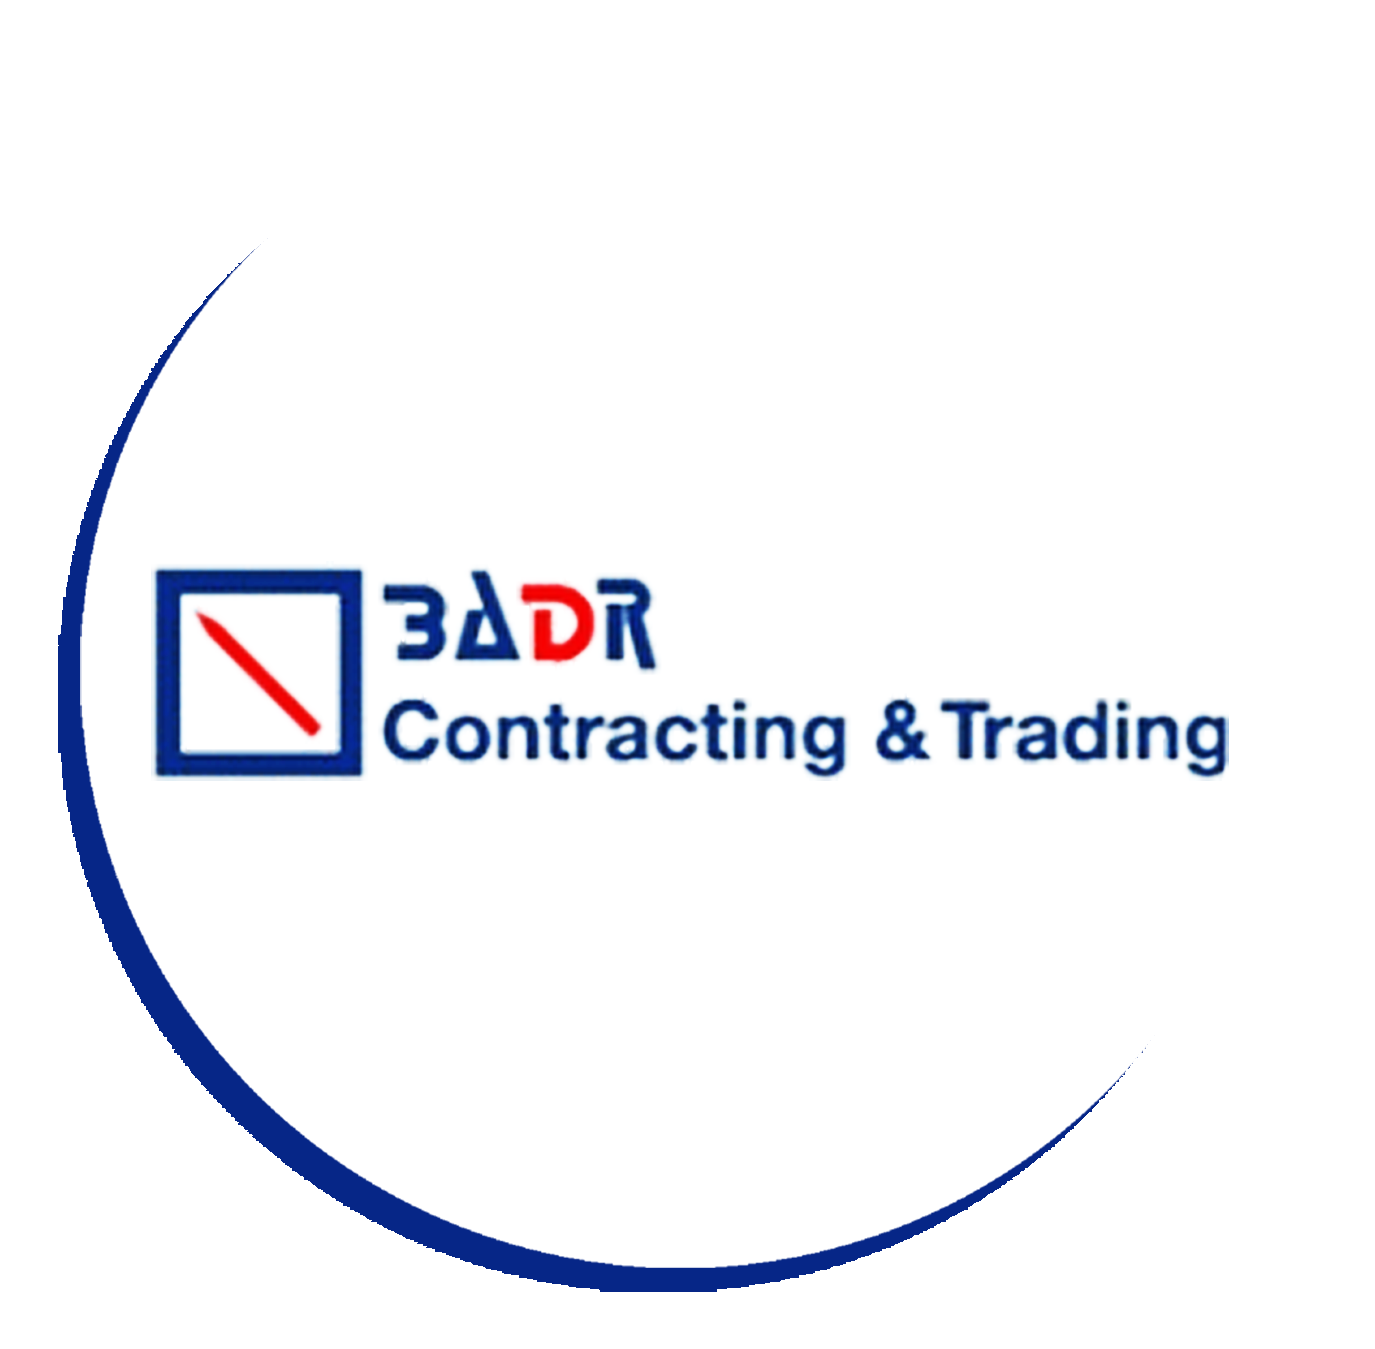 BADR Contracting and Trading